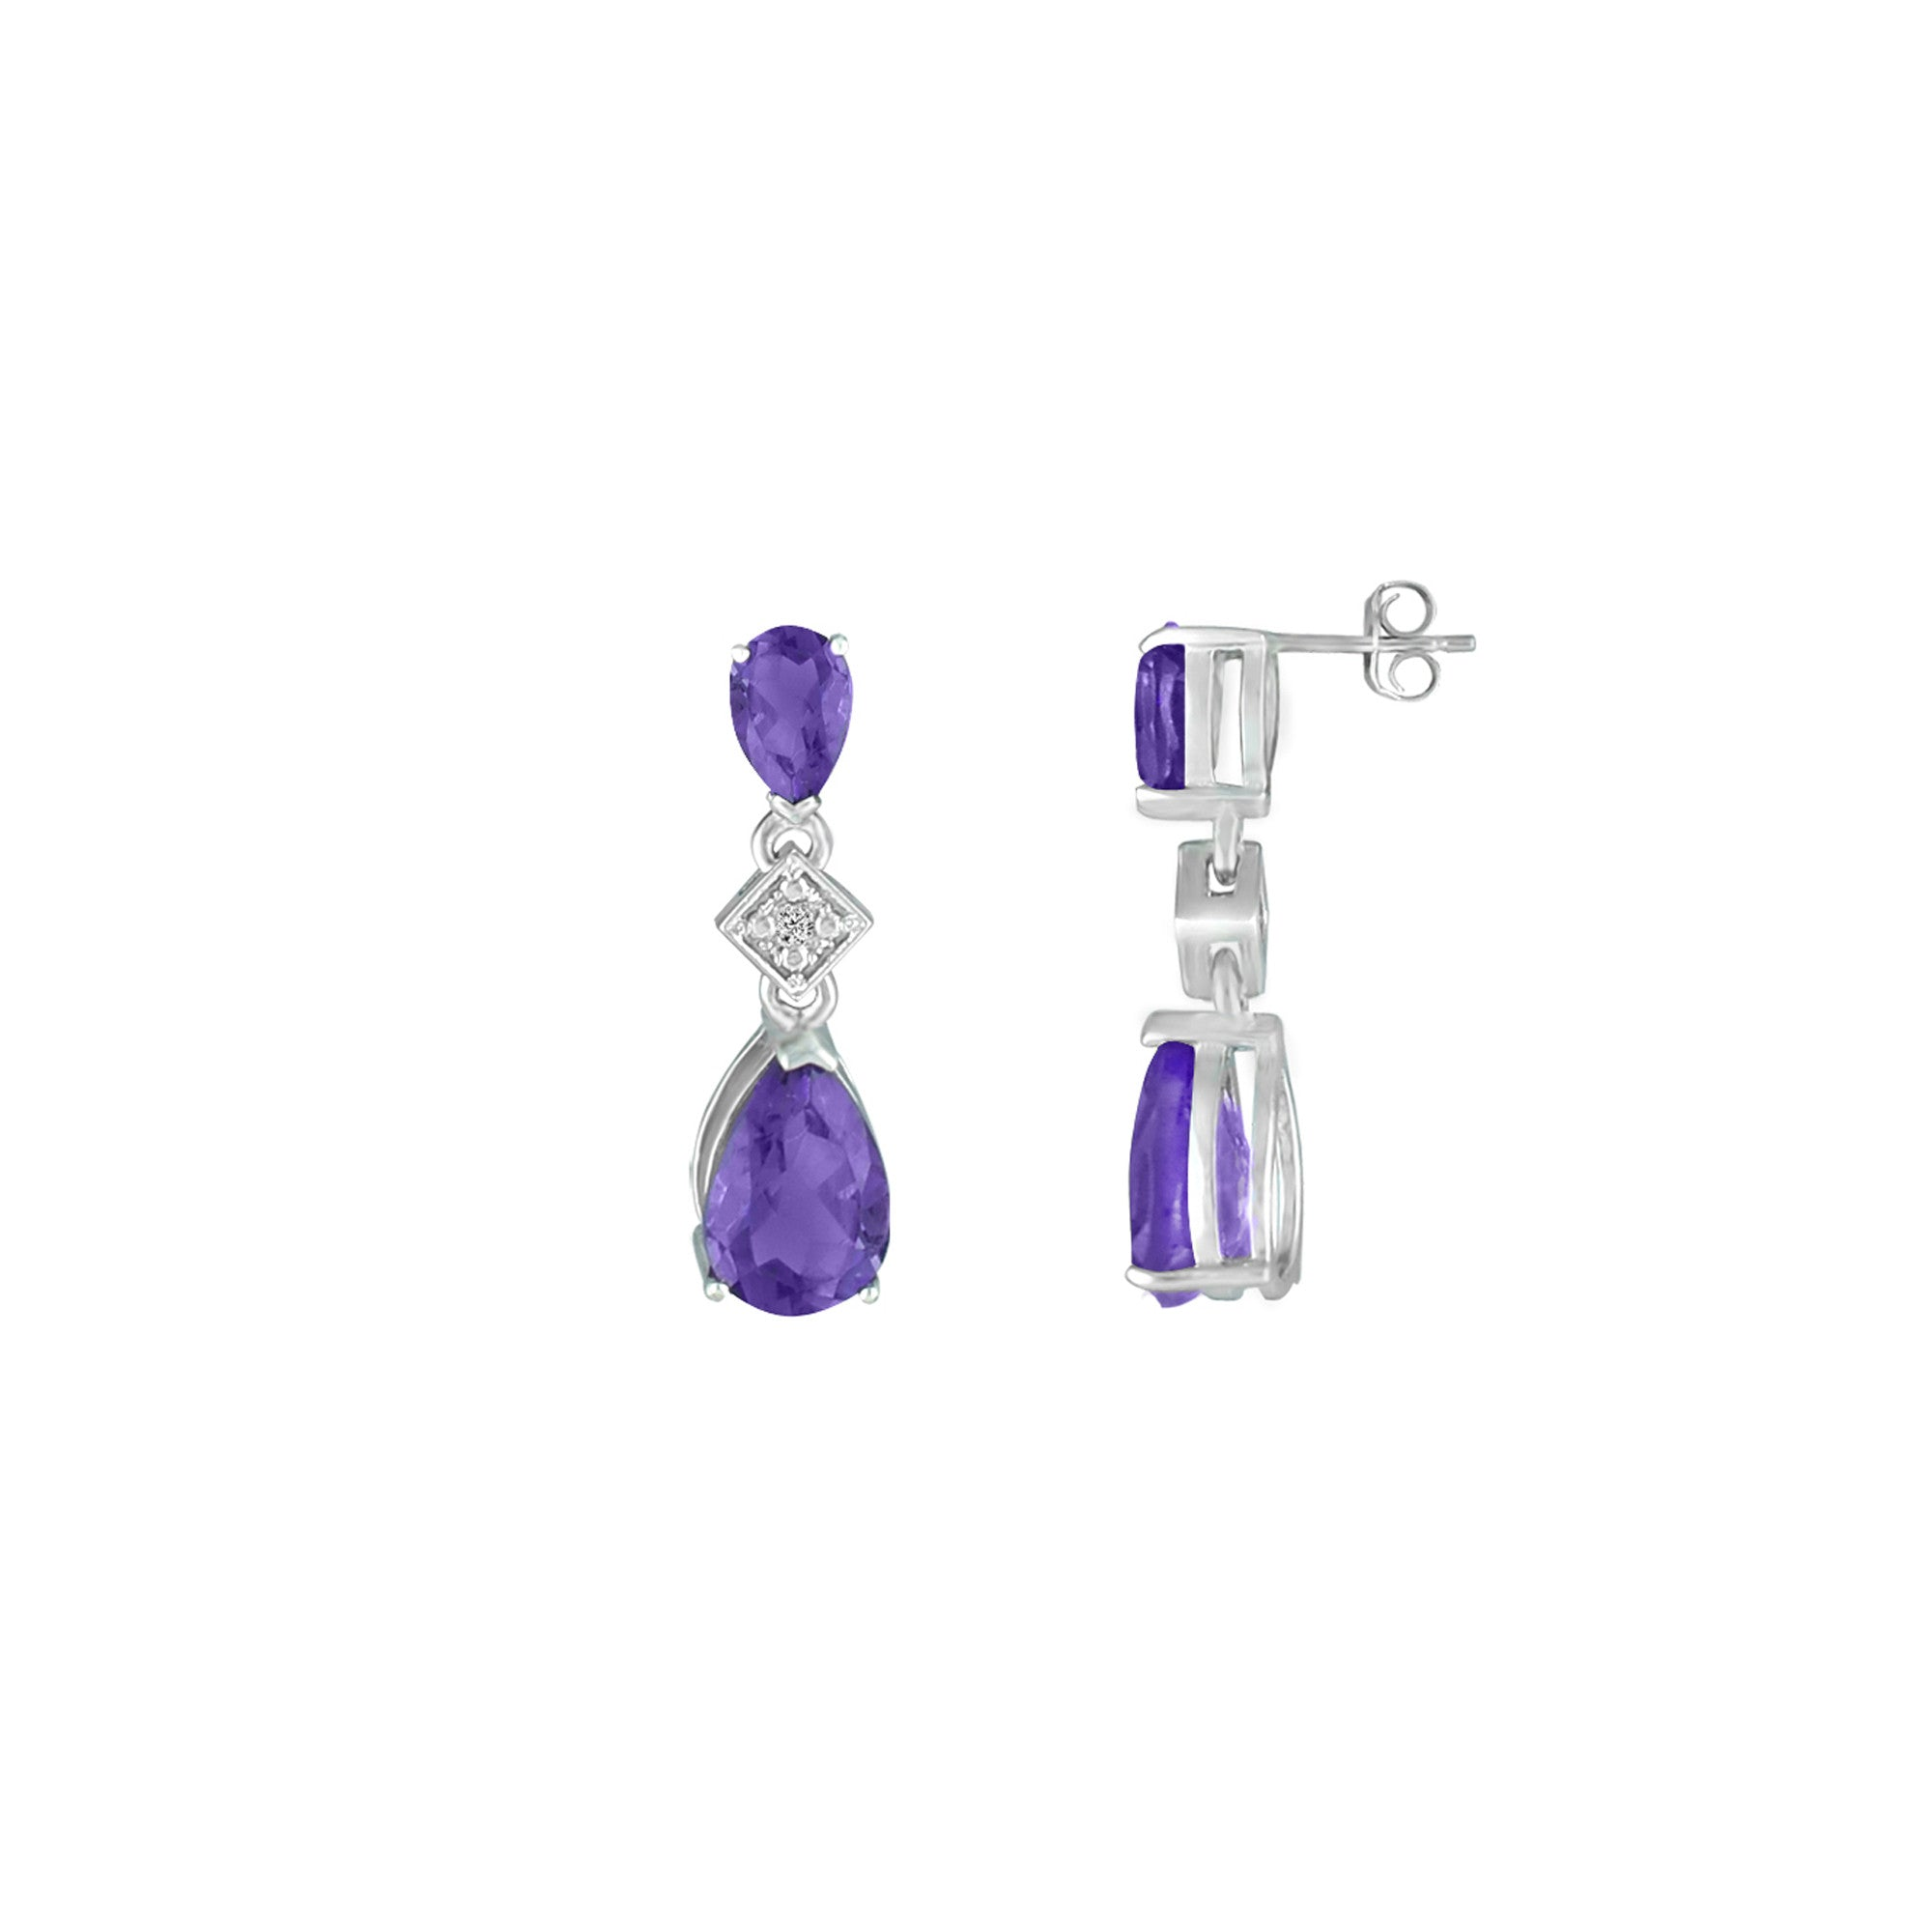 Amethyst and Diamond Accent Fashion Drop Earrings in Silver